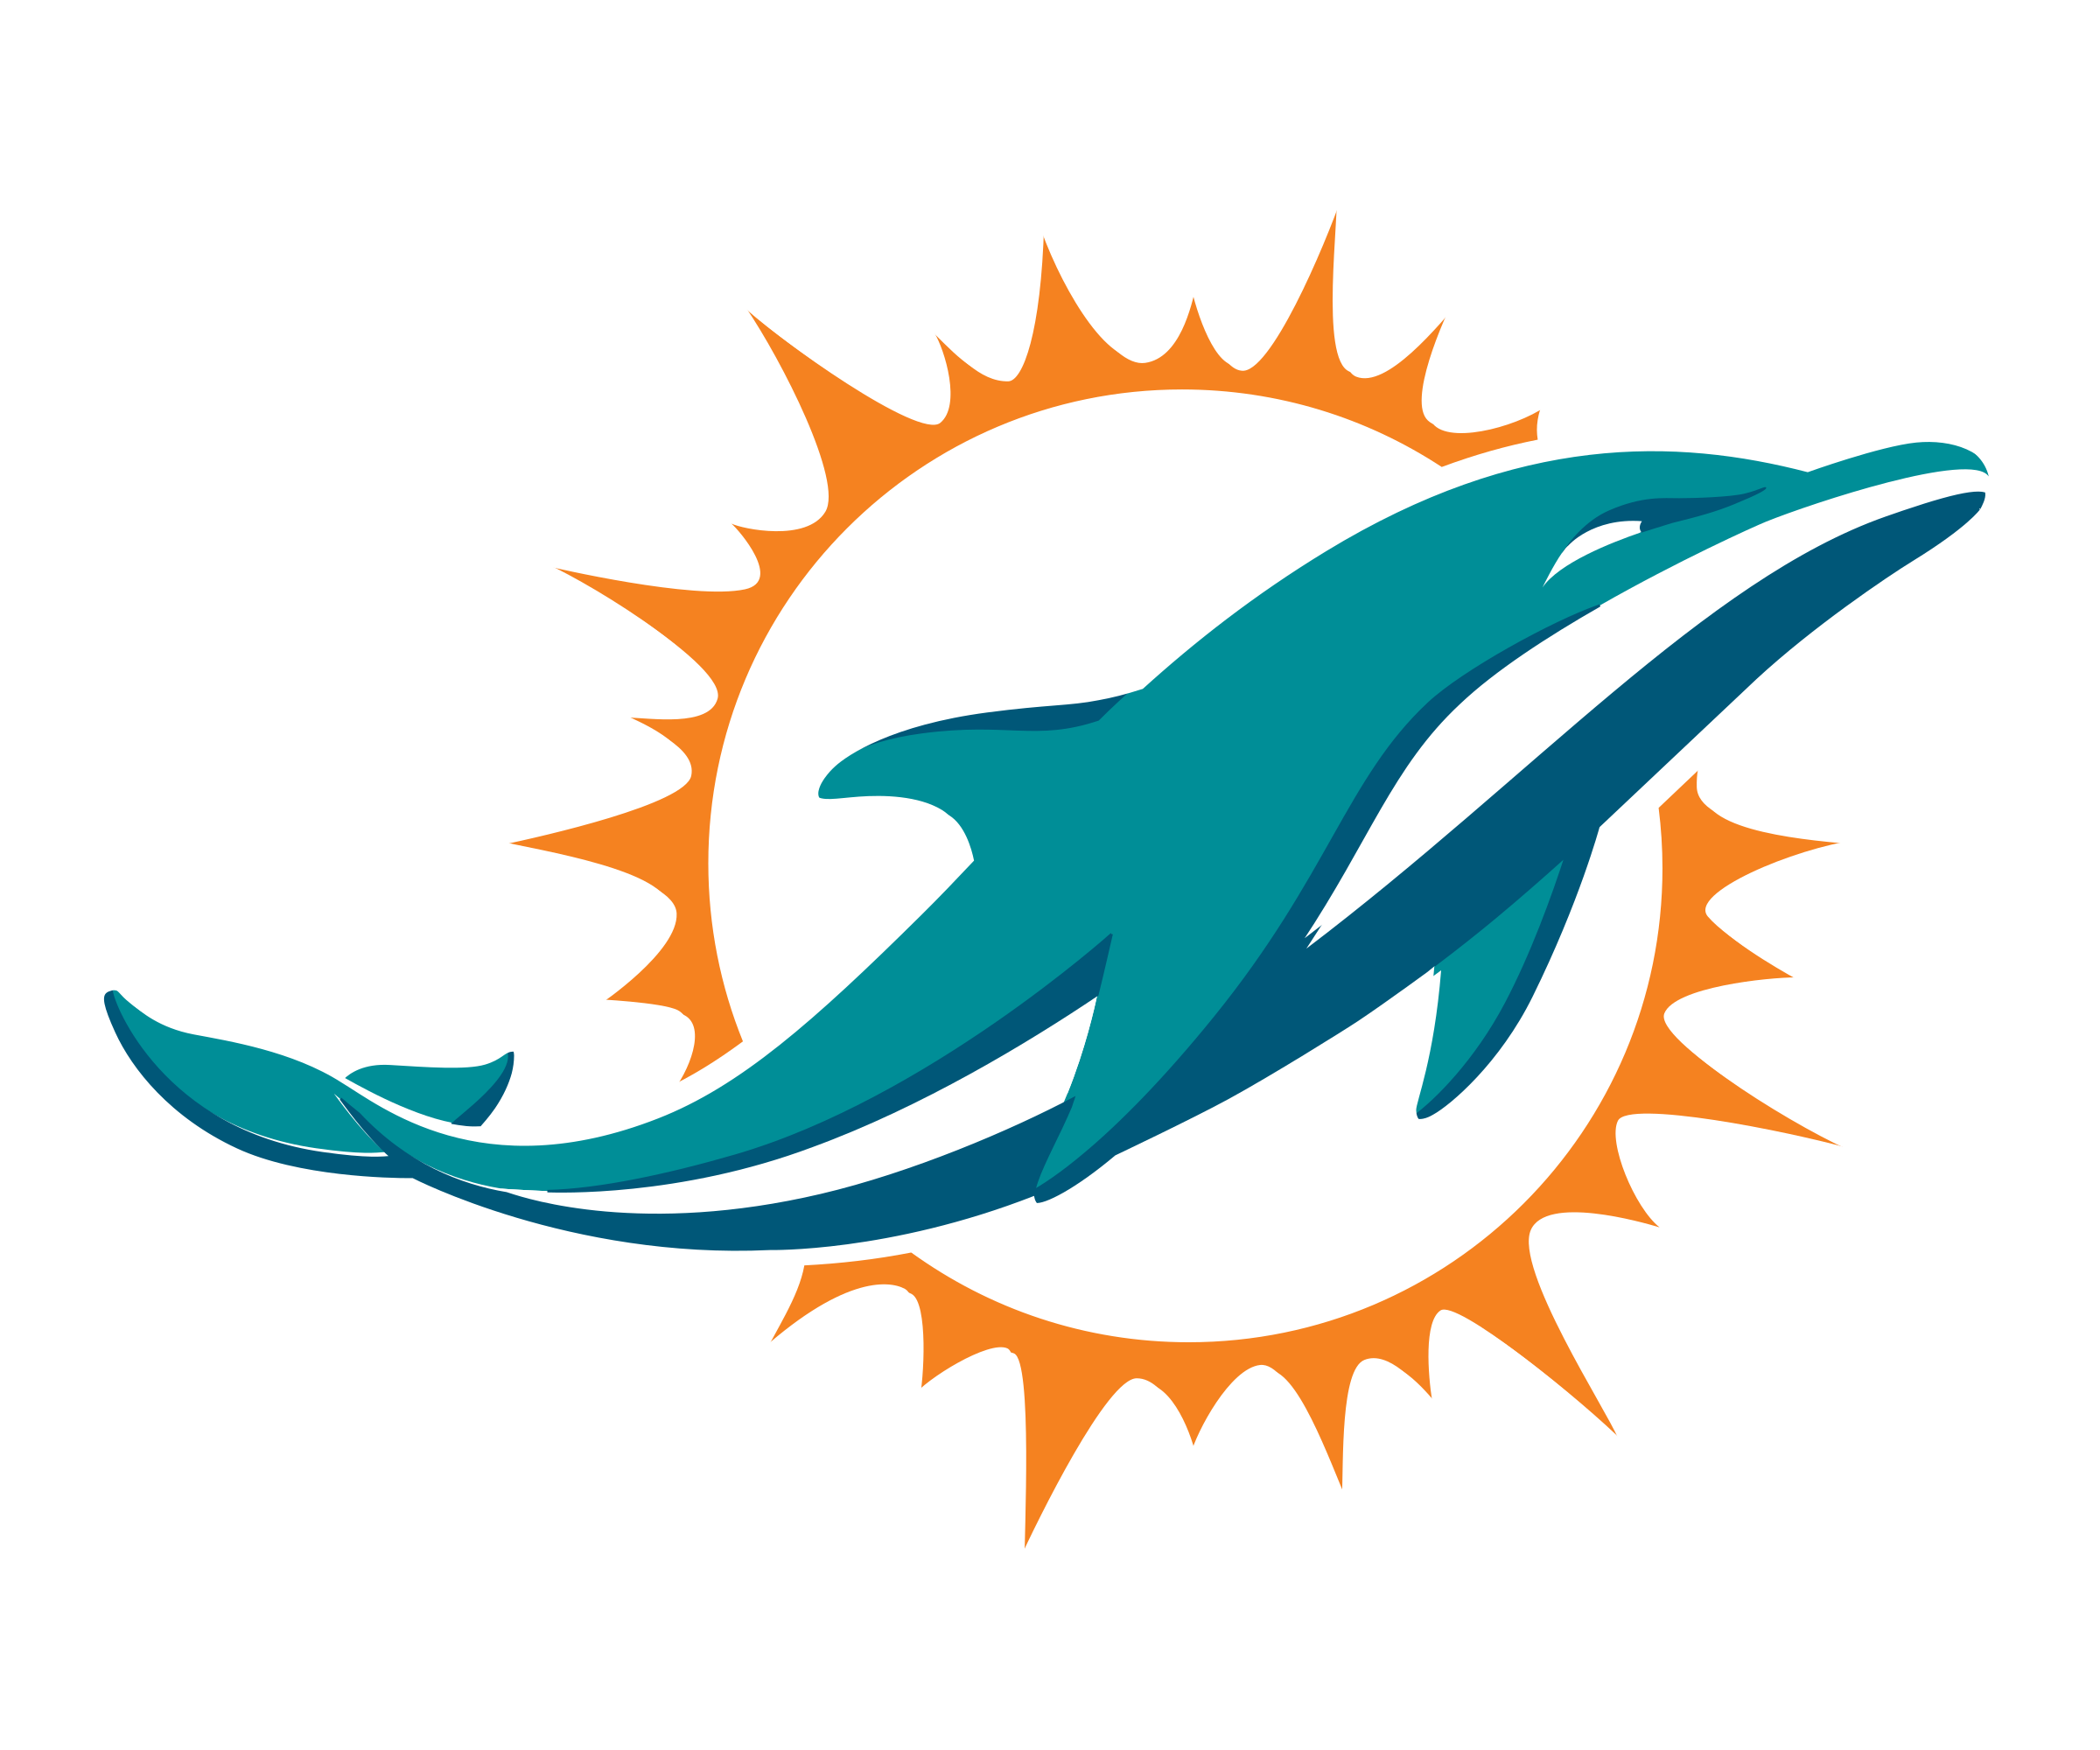 Dolphin vector png. Miami dolphins logo transparent